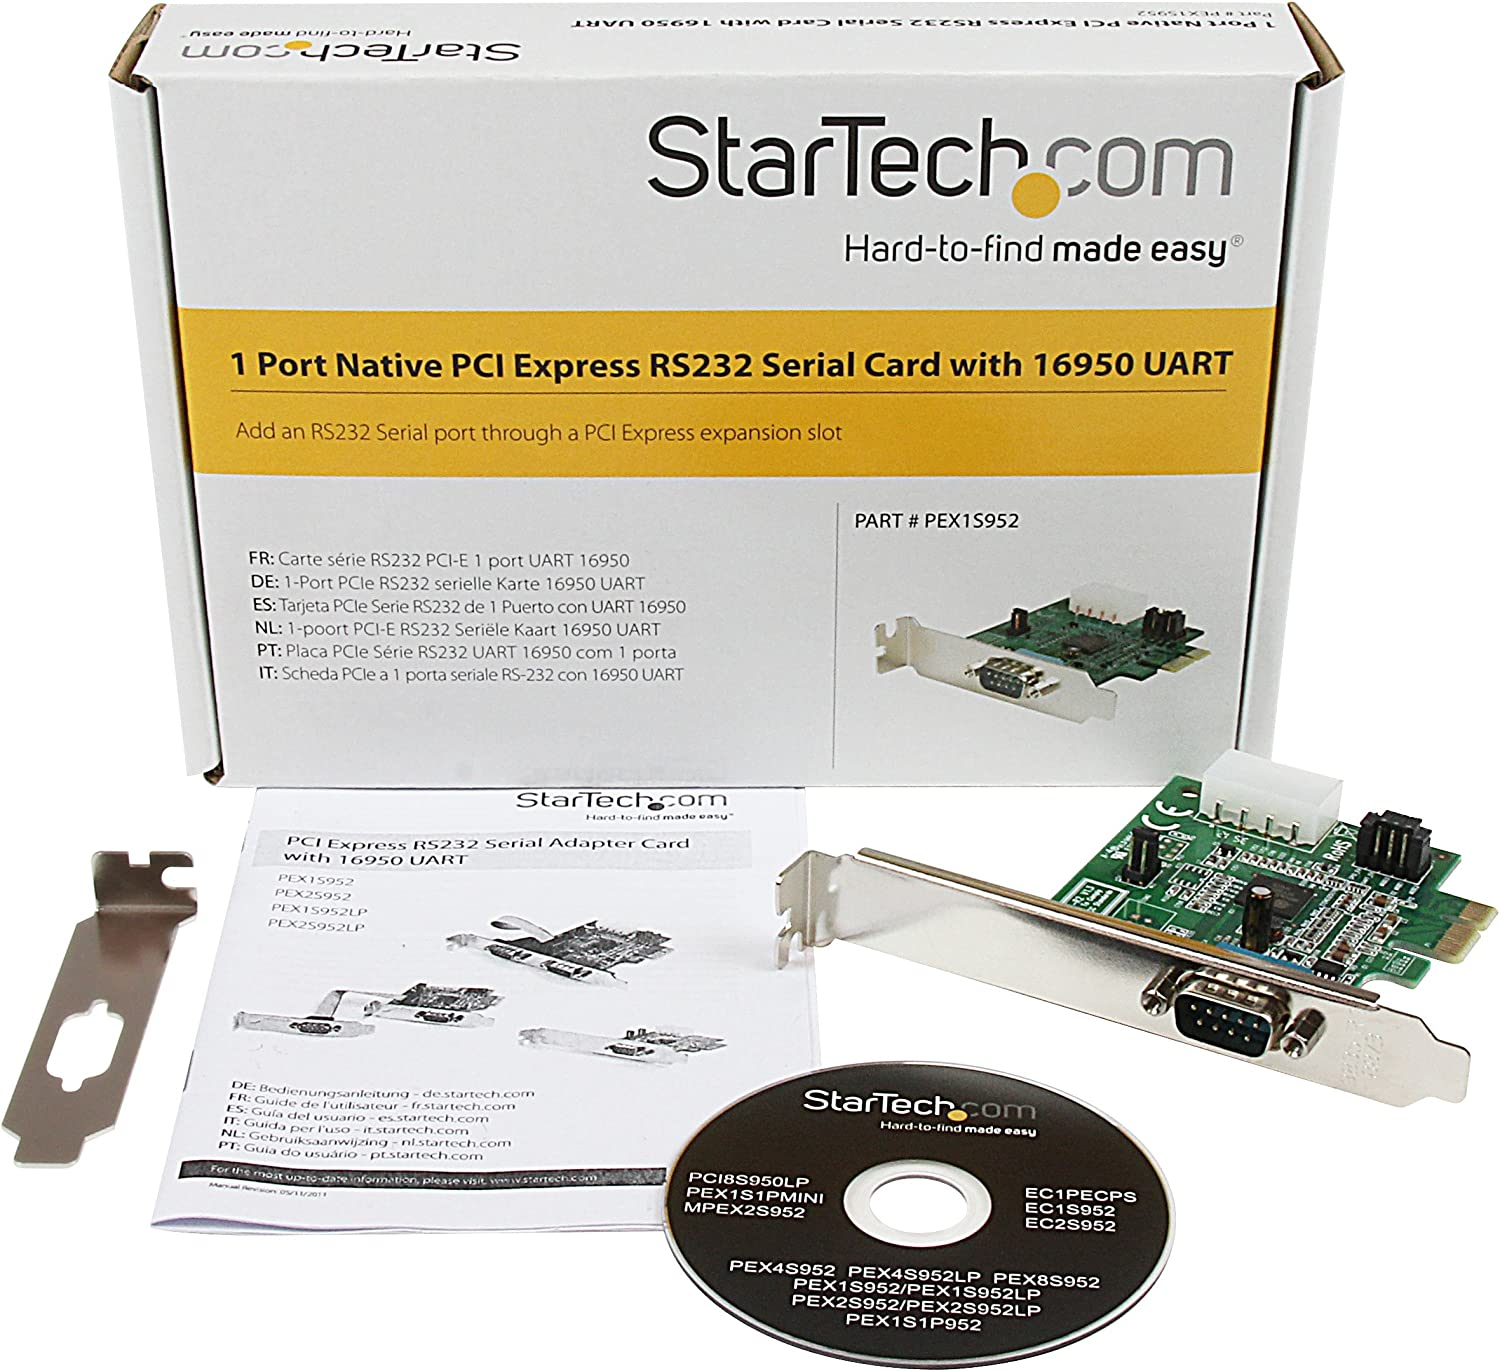 StarTech.com 1 Port Native PCI Express RS232 Serial Adapter Card with 16950 UART (PEX1S952)